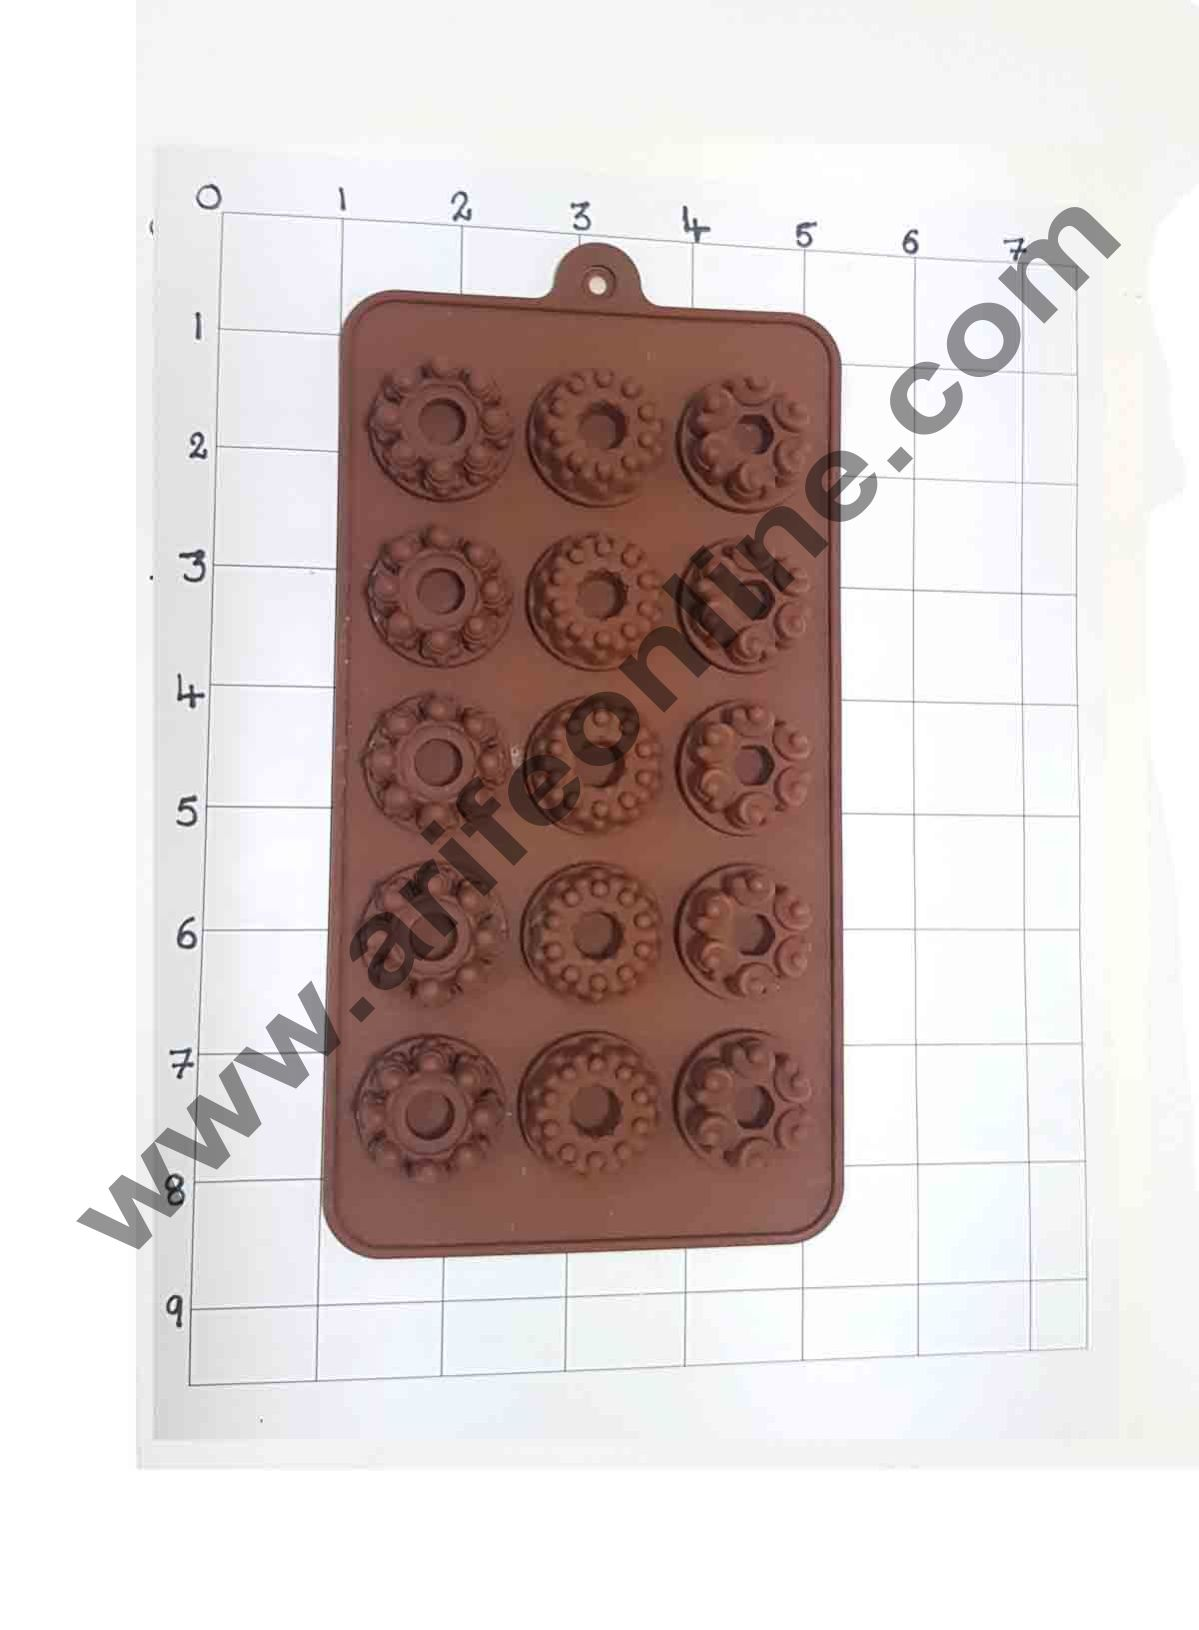 Cake Decor Silicon 15 Cavity Mix Donut Design Brown Chocolate Mould, Ice Mould, Chocolate Decorating Mould